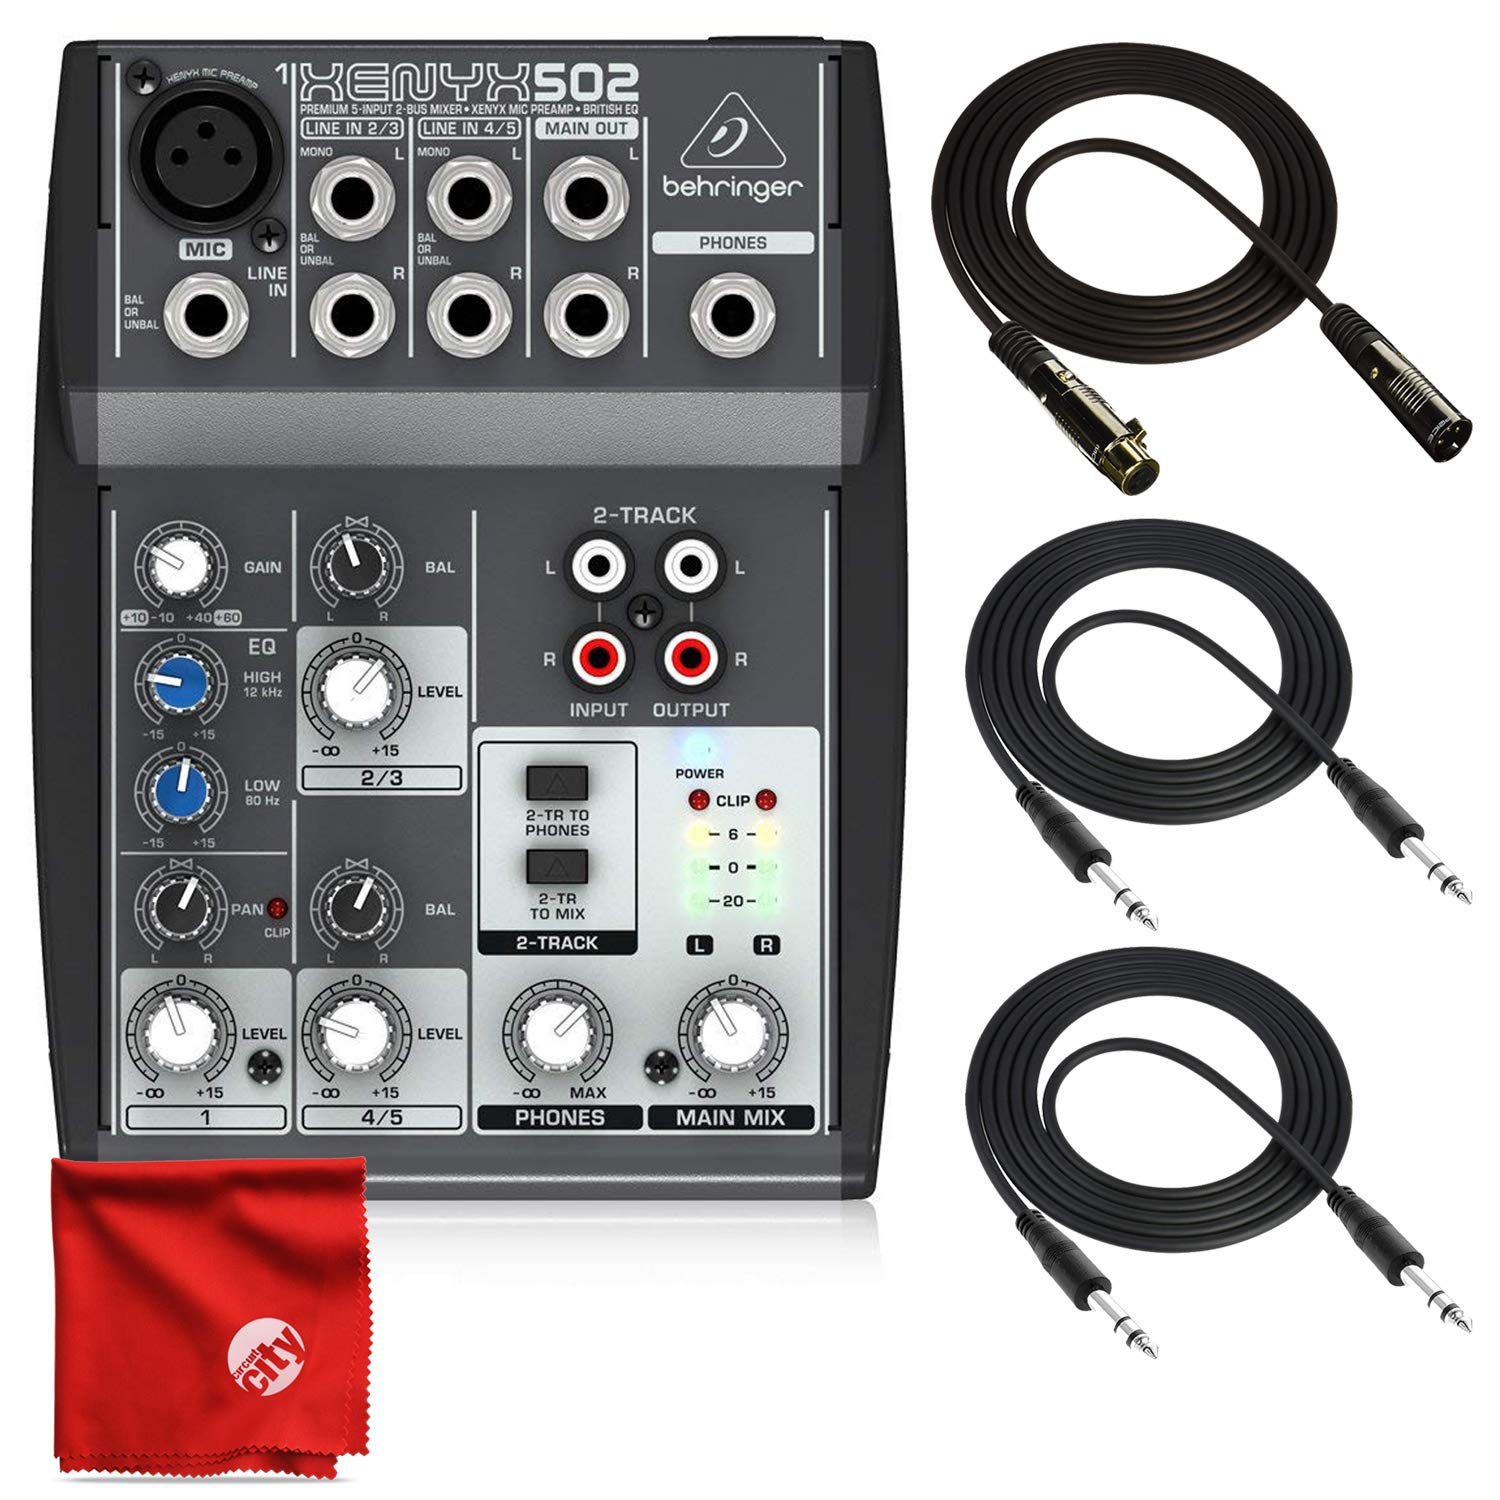 Behringer Xenyx 502 Premium 5-Input 2-Bus Mixer with XENYX Mic Preamp and British EQ Bundle + Deluxe 10ft XLR Cable + 2X 10ft TRS Cables + Cleaning Cloth